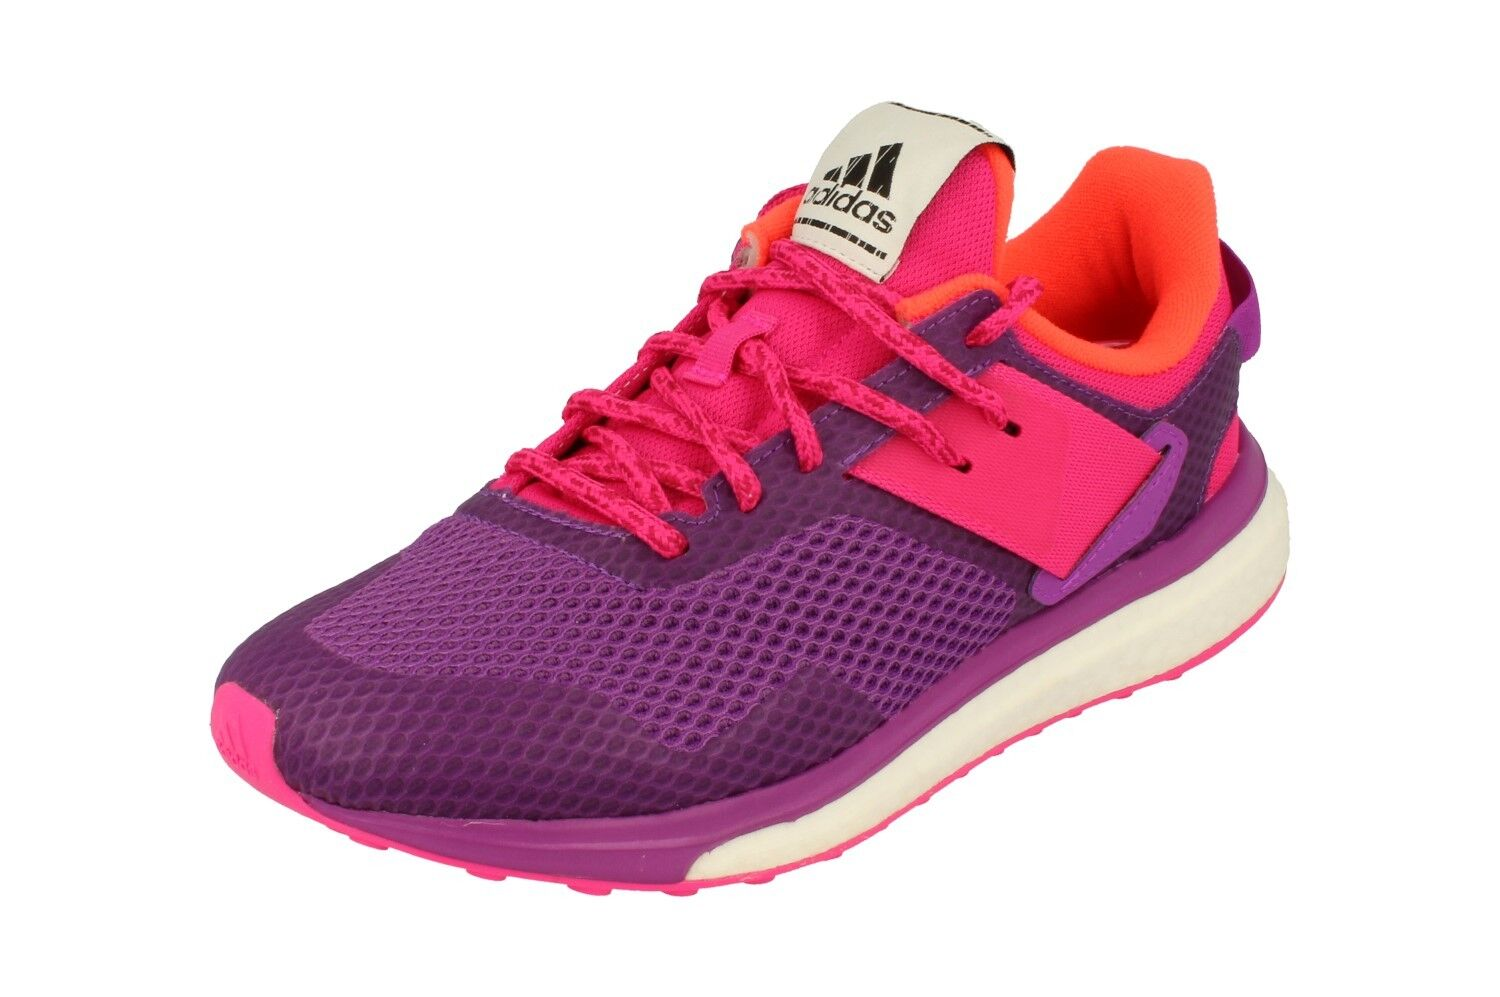 Adidas Response 3 Boost AQ6103 Womens Running Trainers Sneakers AQ6103 Boost b2e2c7